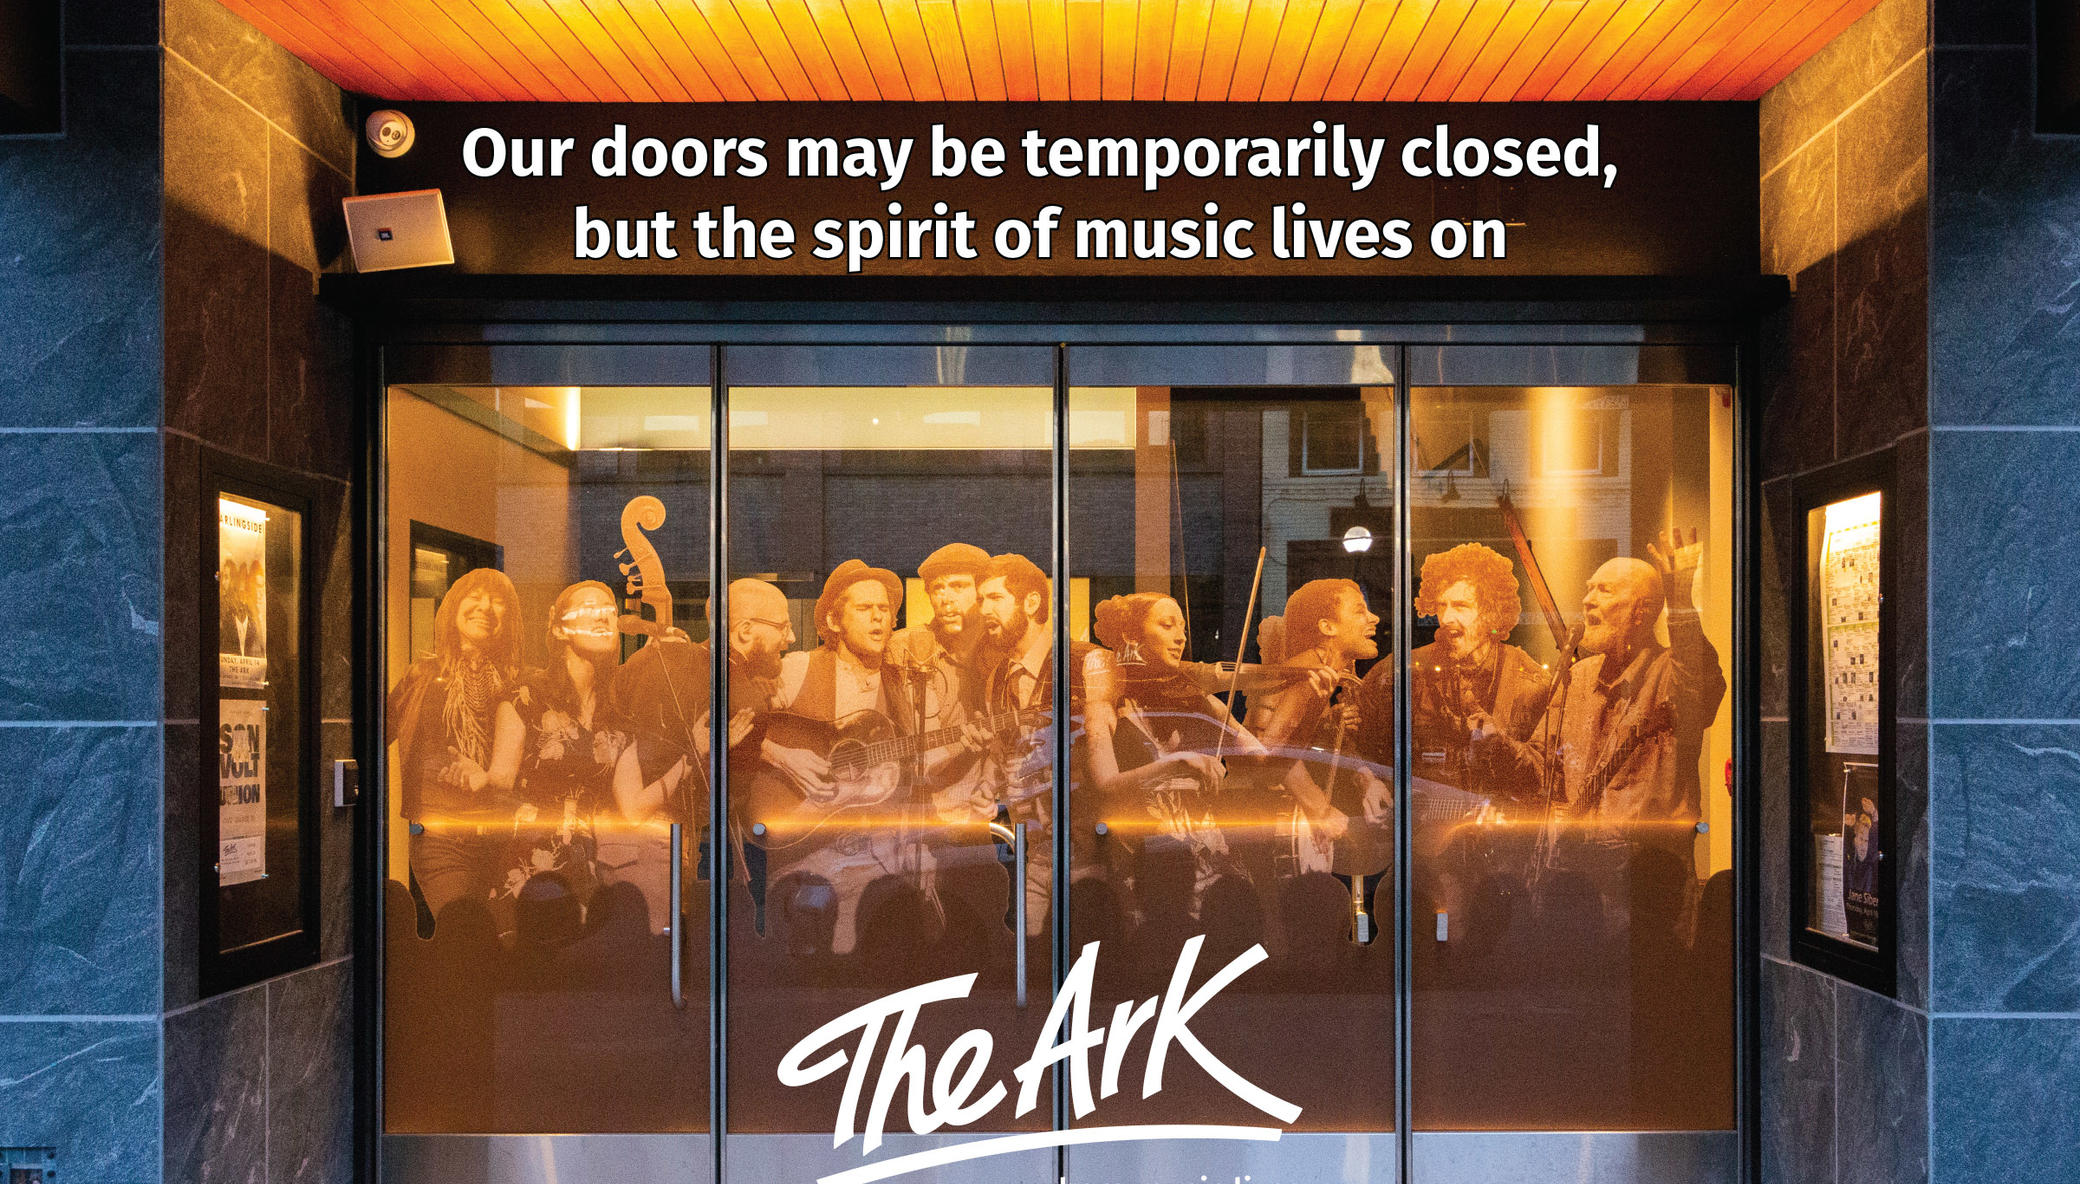 The Ark's COVID-19 Response: The Music Lives On